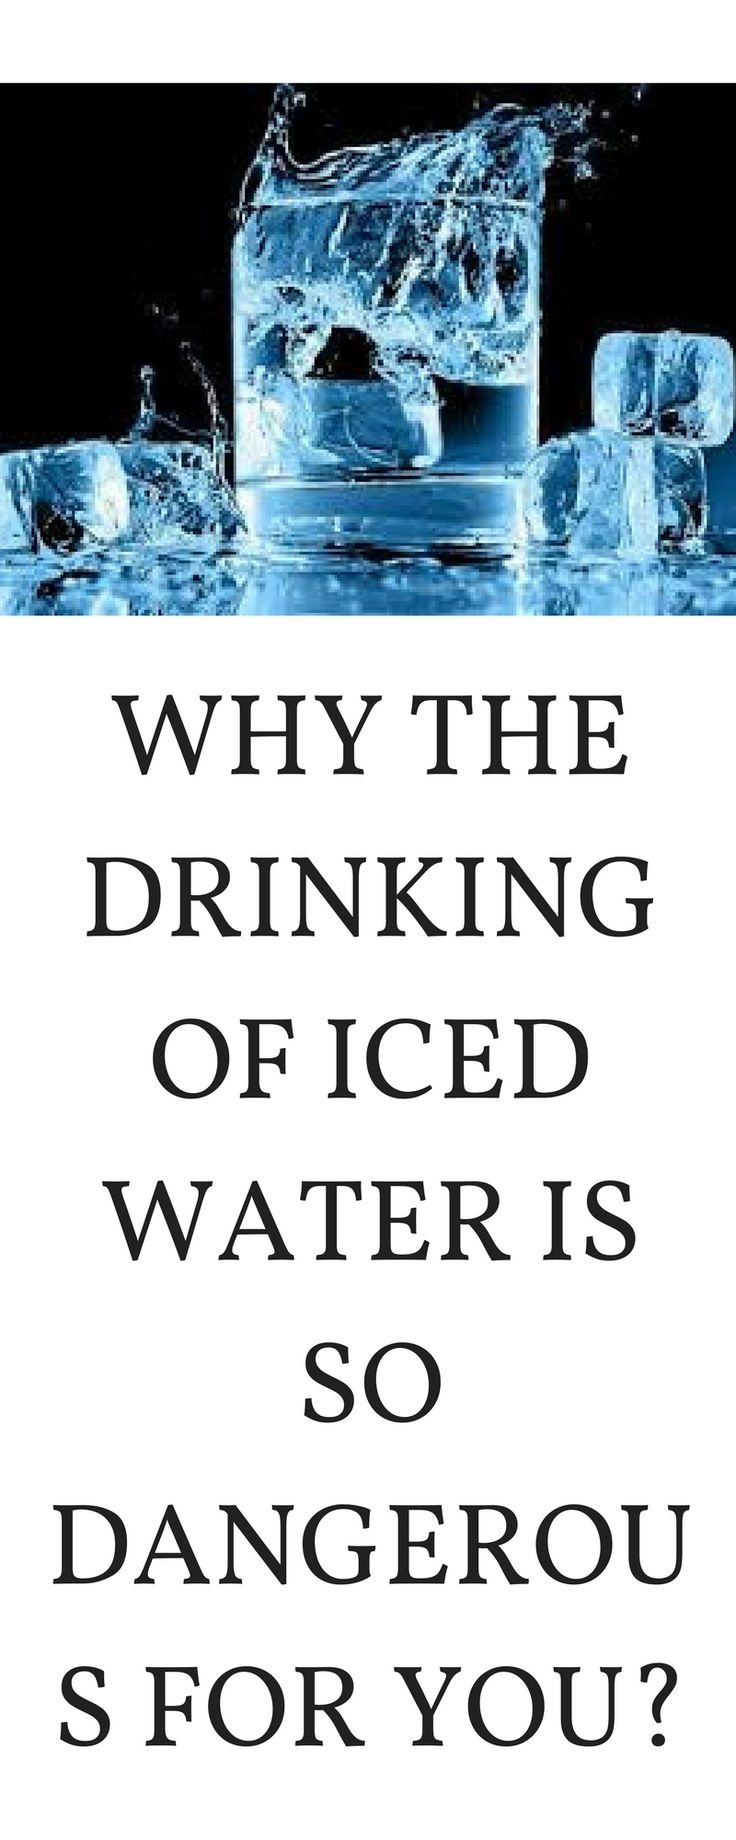 WHY THE DRINKING OF ICED WATER IS SO DANGEROUS FOR YOU?